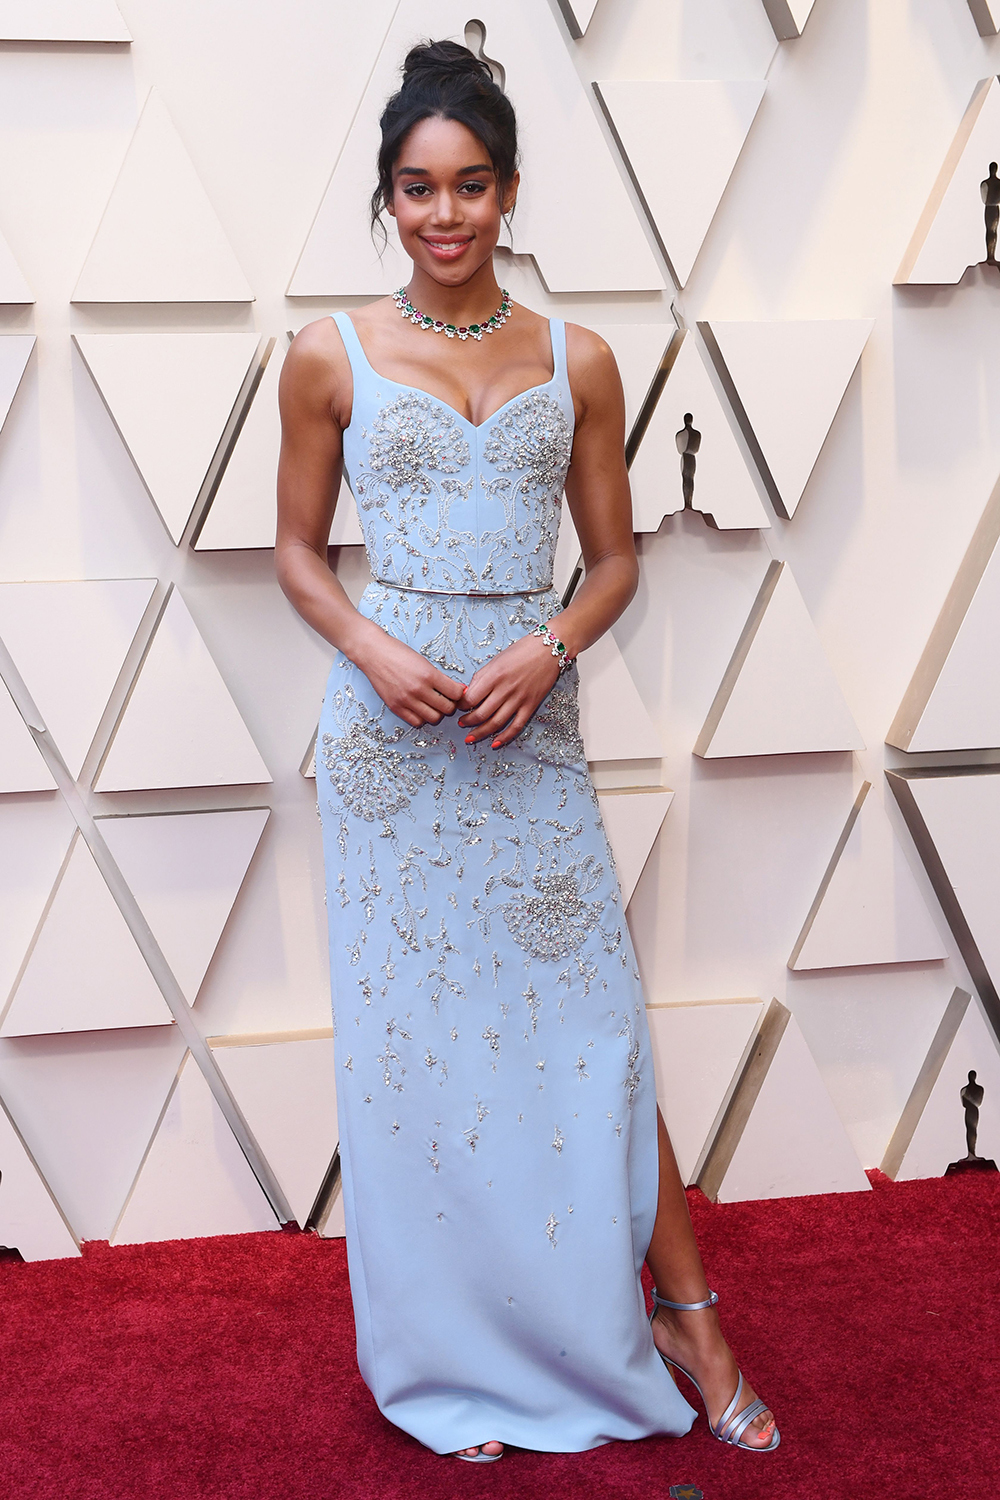 laura-harrier-oscars-red-carpet-2019.jpg